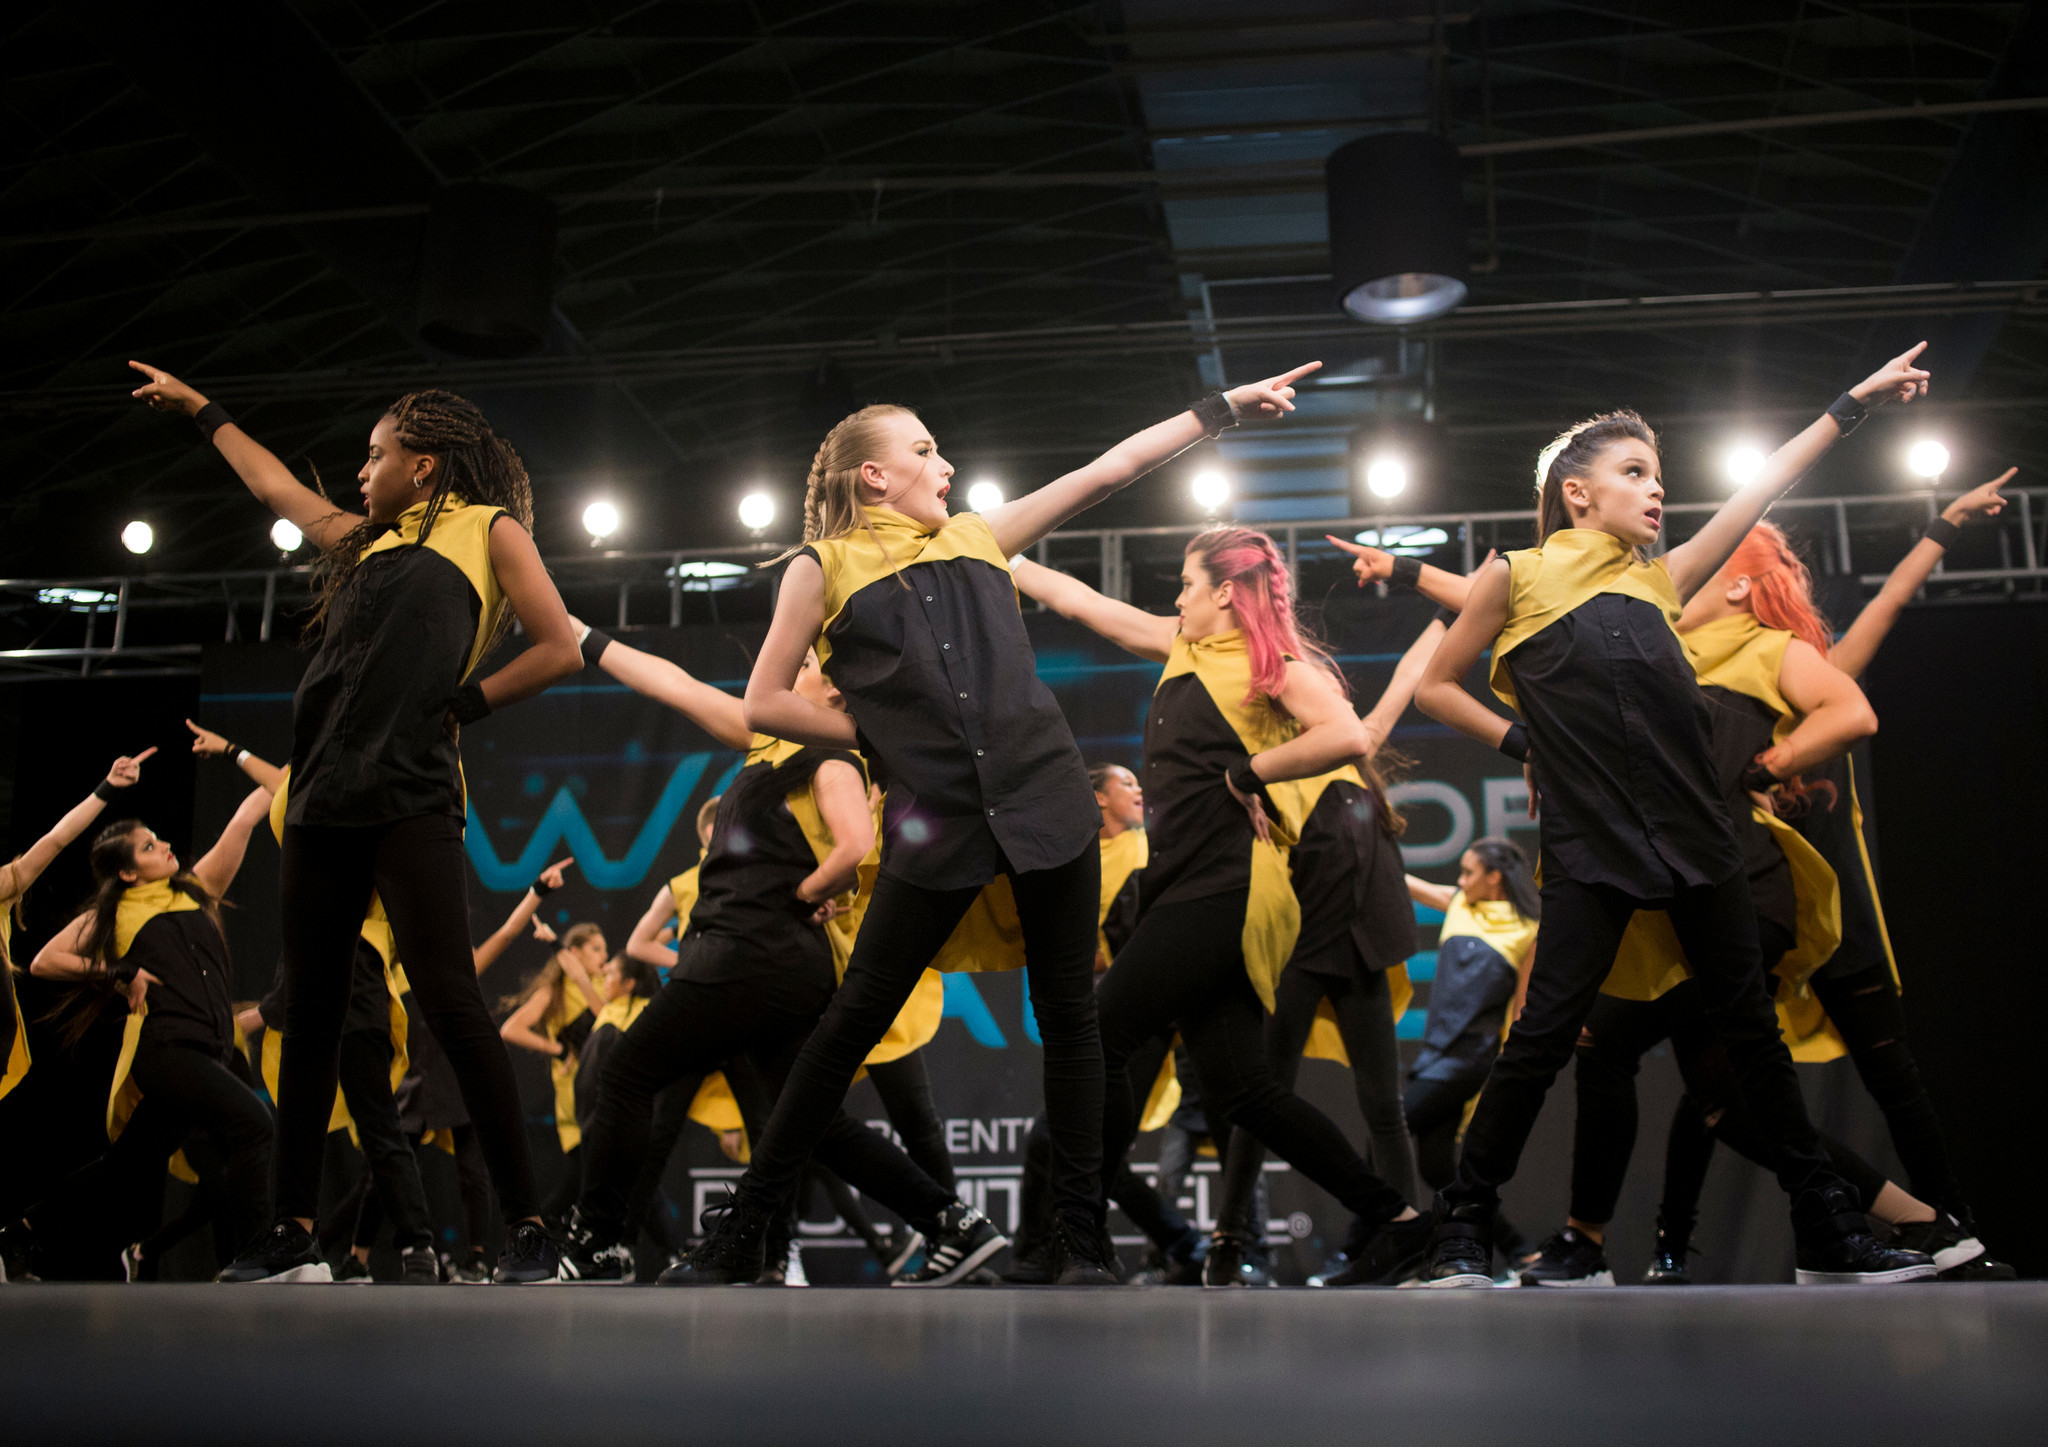 Los Angeles-based MDC Crew perform in the youth division.